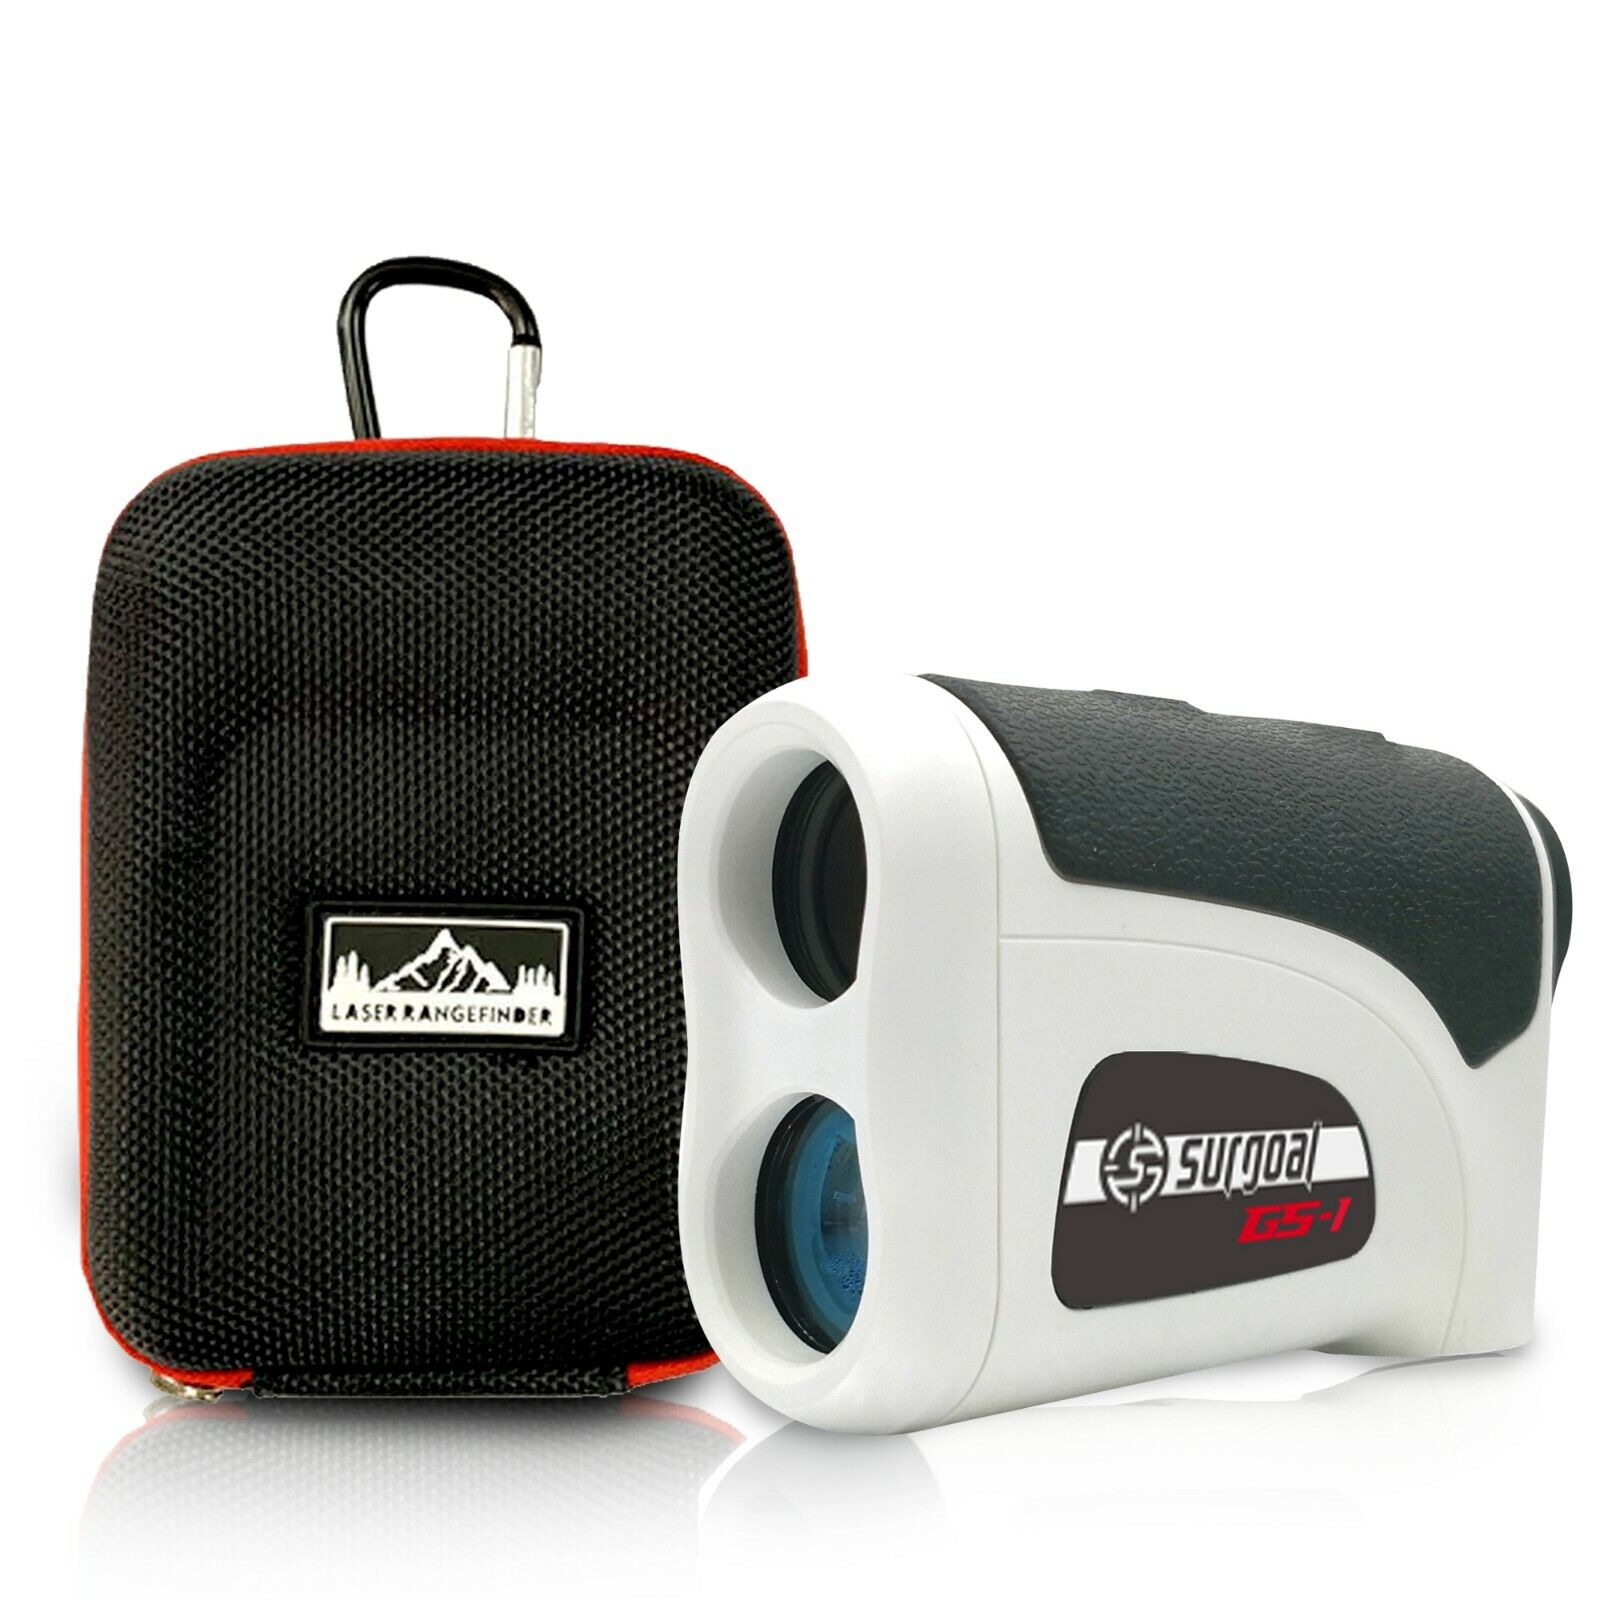 GS-1 HD PRO GOLF 1200YD Laser Range Finder——Tournament E